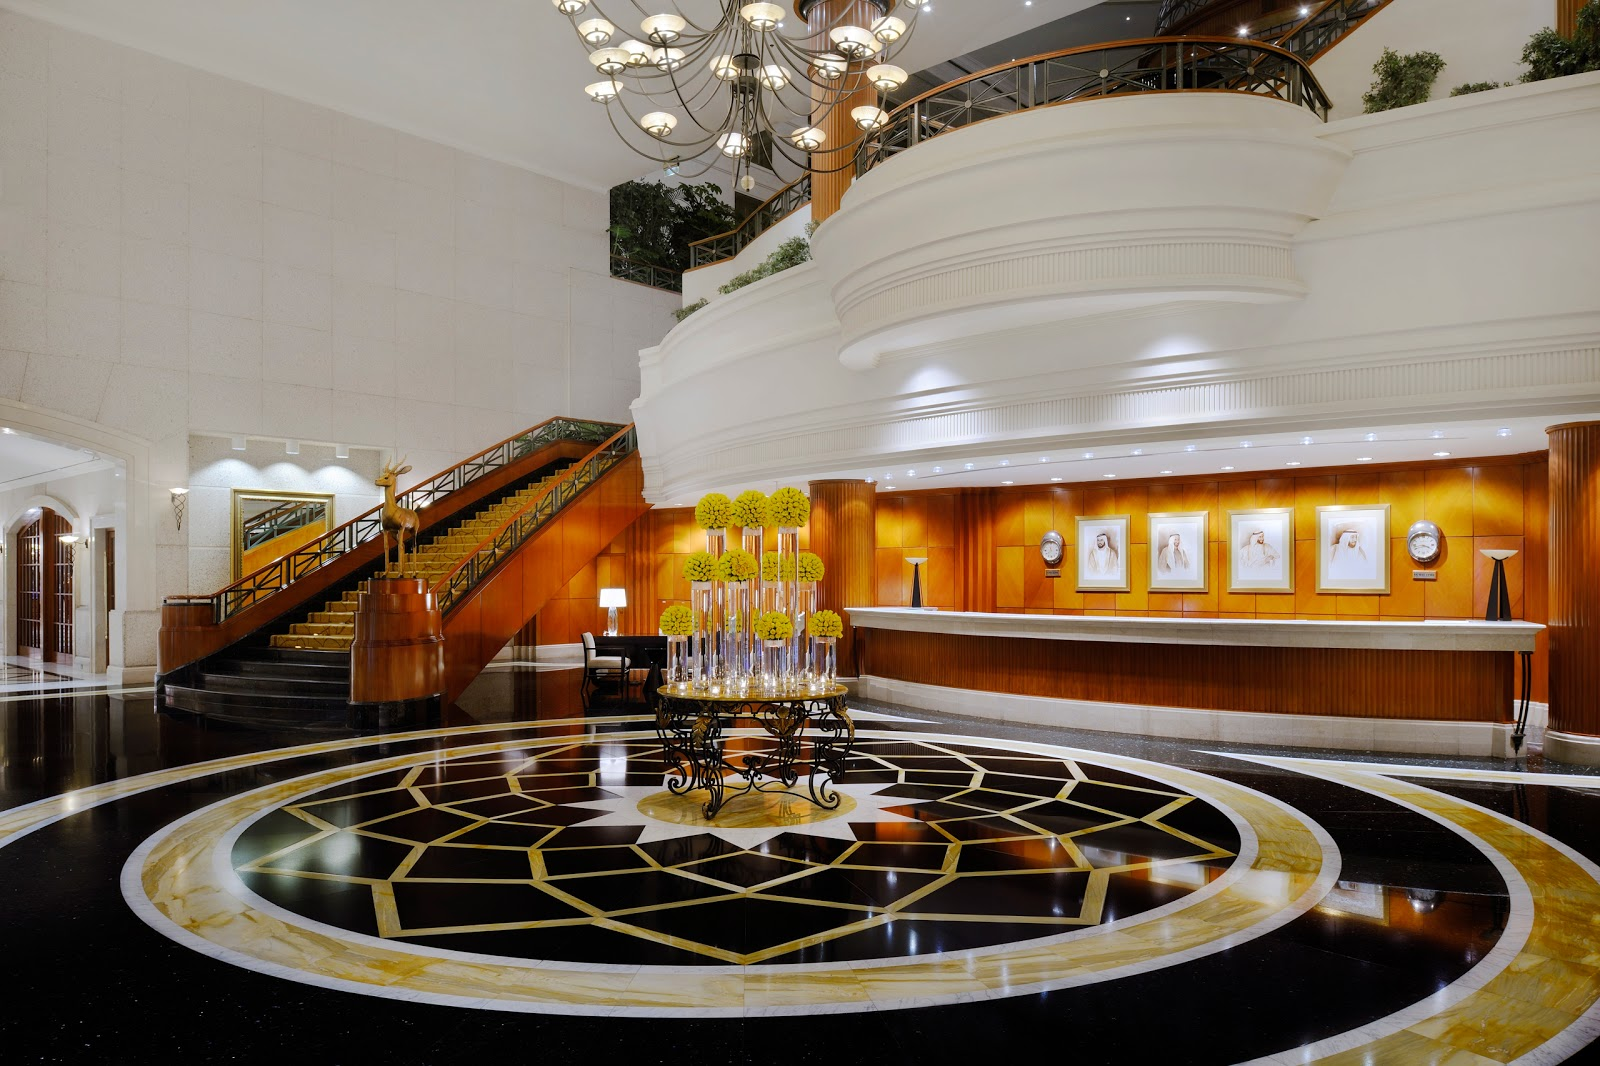 Jw marriott dubai hotels in dubai top hotels best for Top five star hotels in dubai